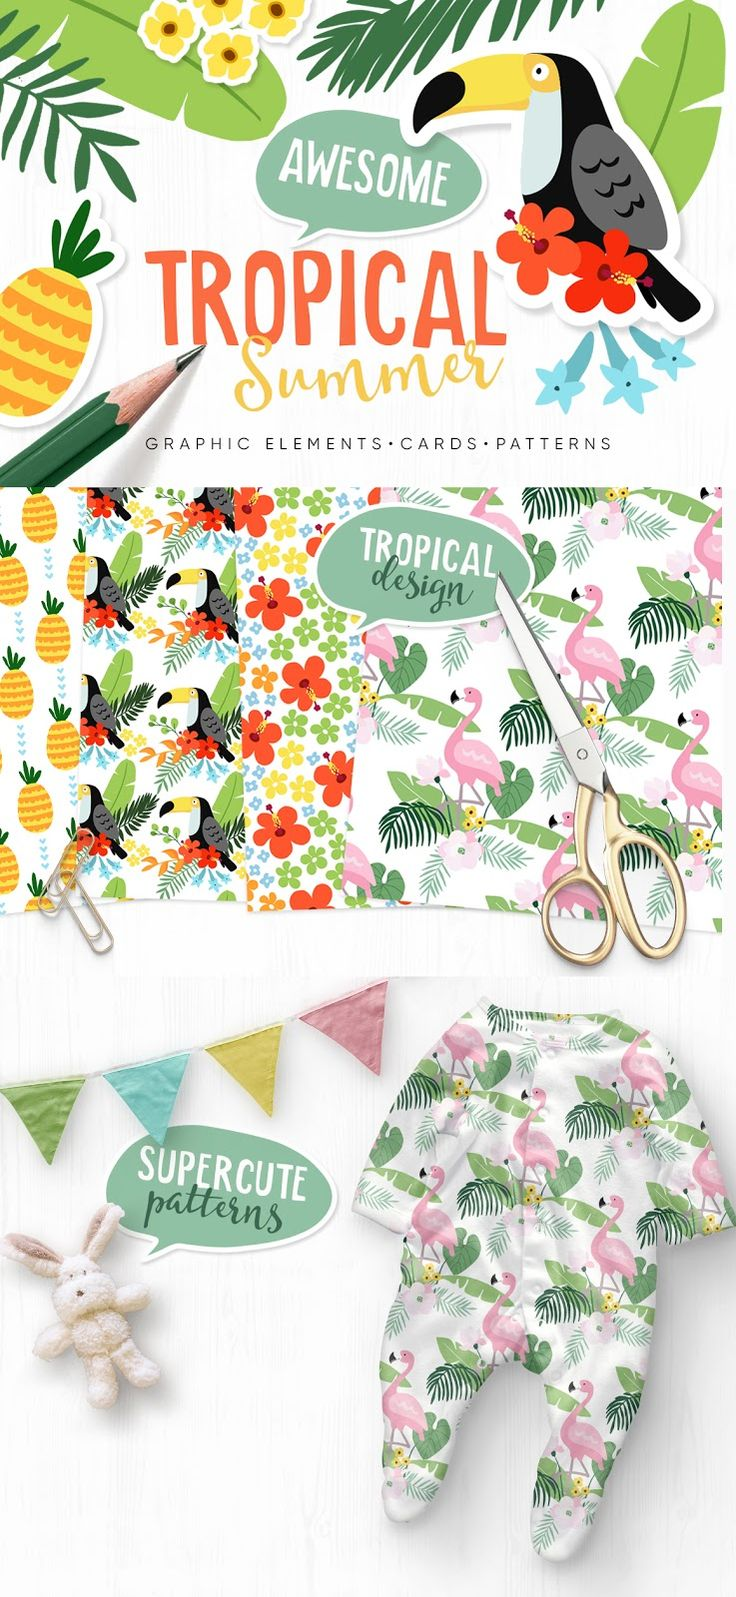 I have just finished a Tropical Summer Set – the trendy tropical & jungle graphic collection. I hope that these cute hand-drawn graphic elements, seamless patterns, and cards would be ideal for decoration of your blog, holiday projects, greeting cards, invitations, tags, presentations, handmade crafts or scrapbooking. Get ready for Summer! Contains illuistrations of palm leaves, toucan, flamingo, pineapple.